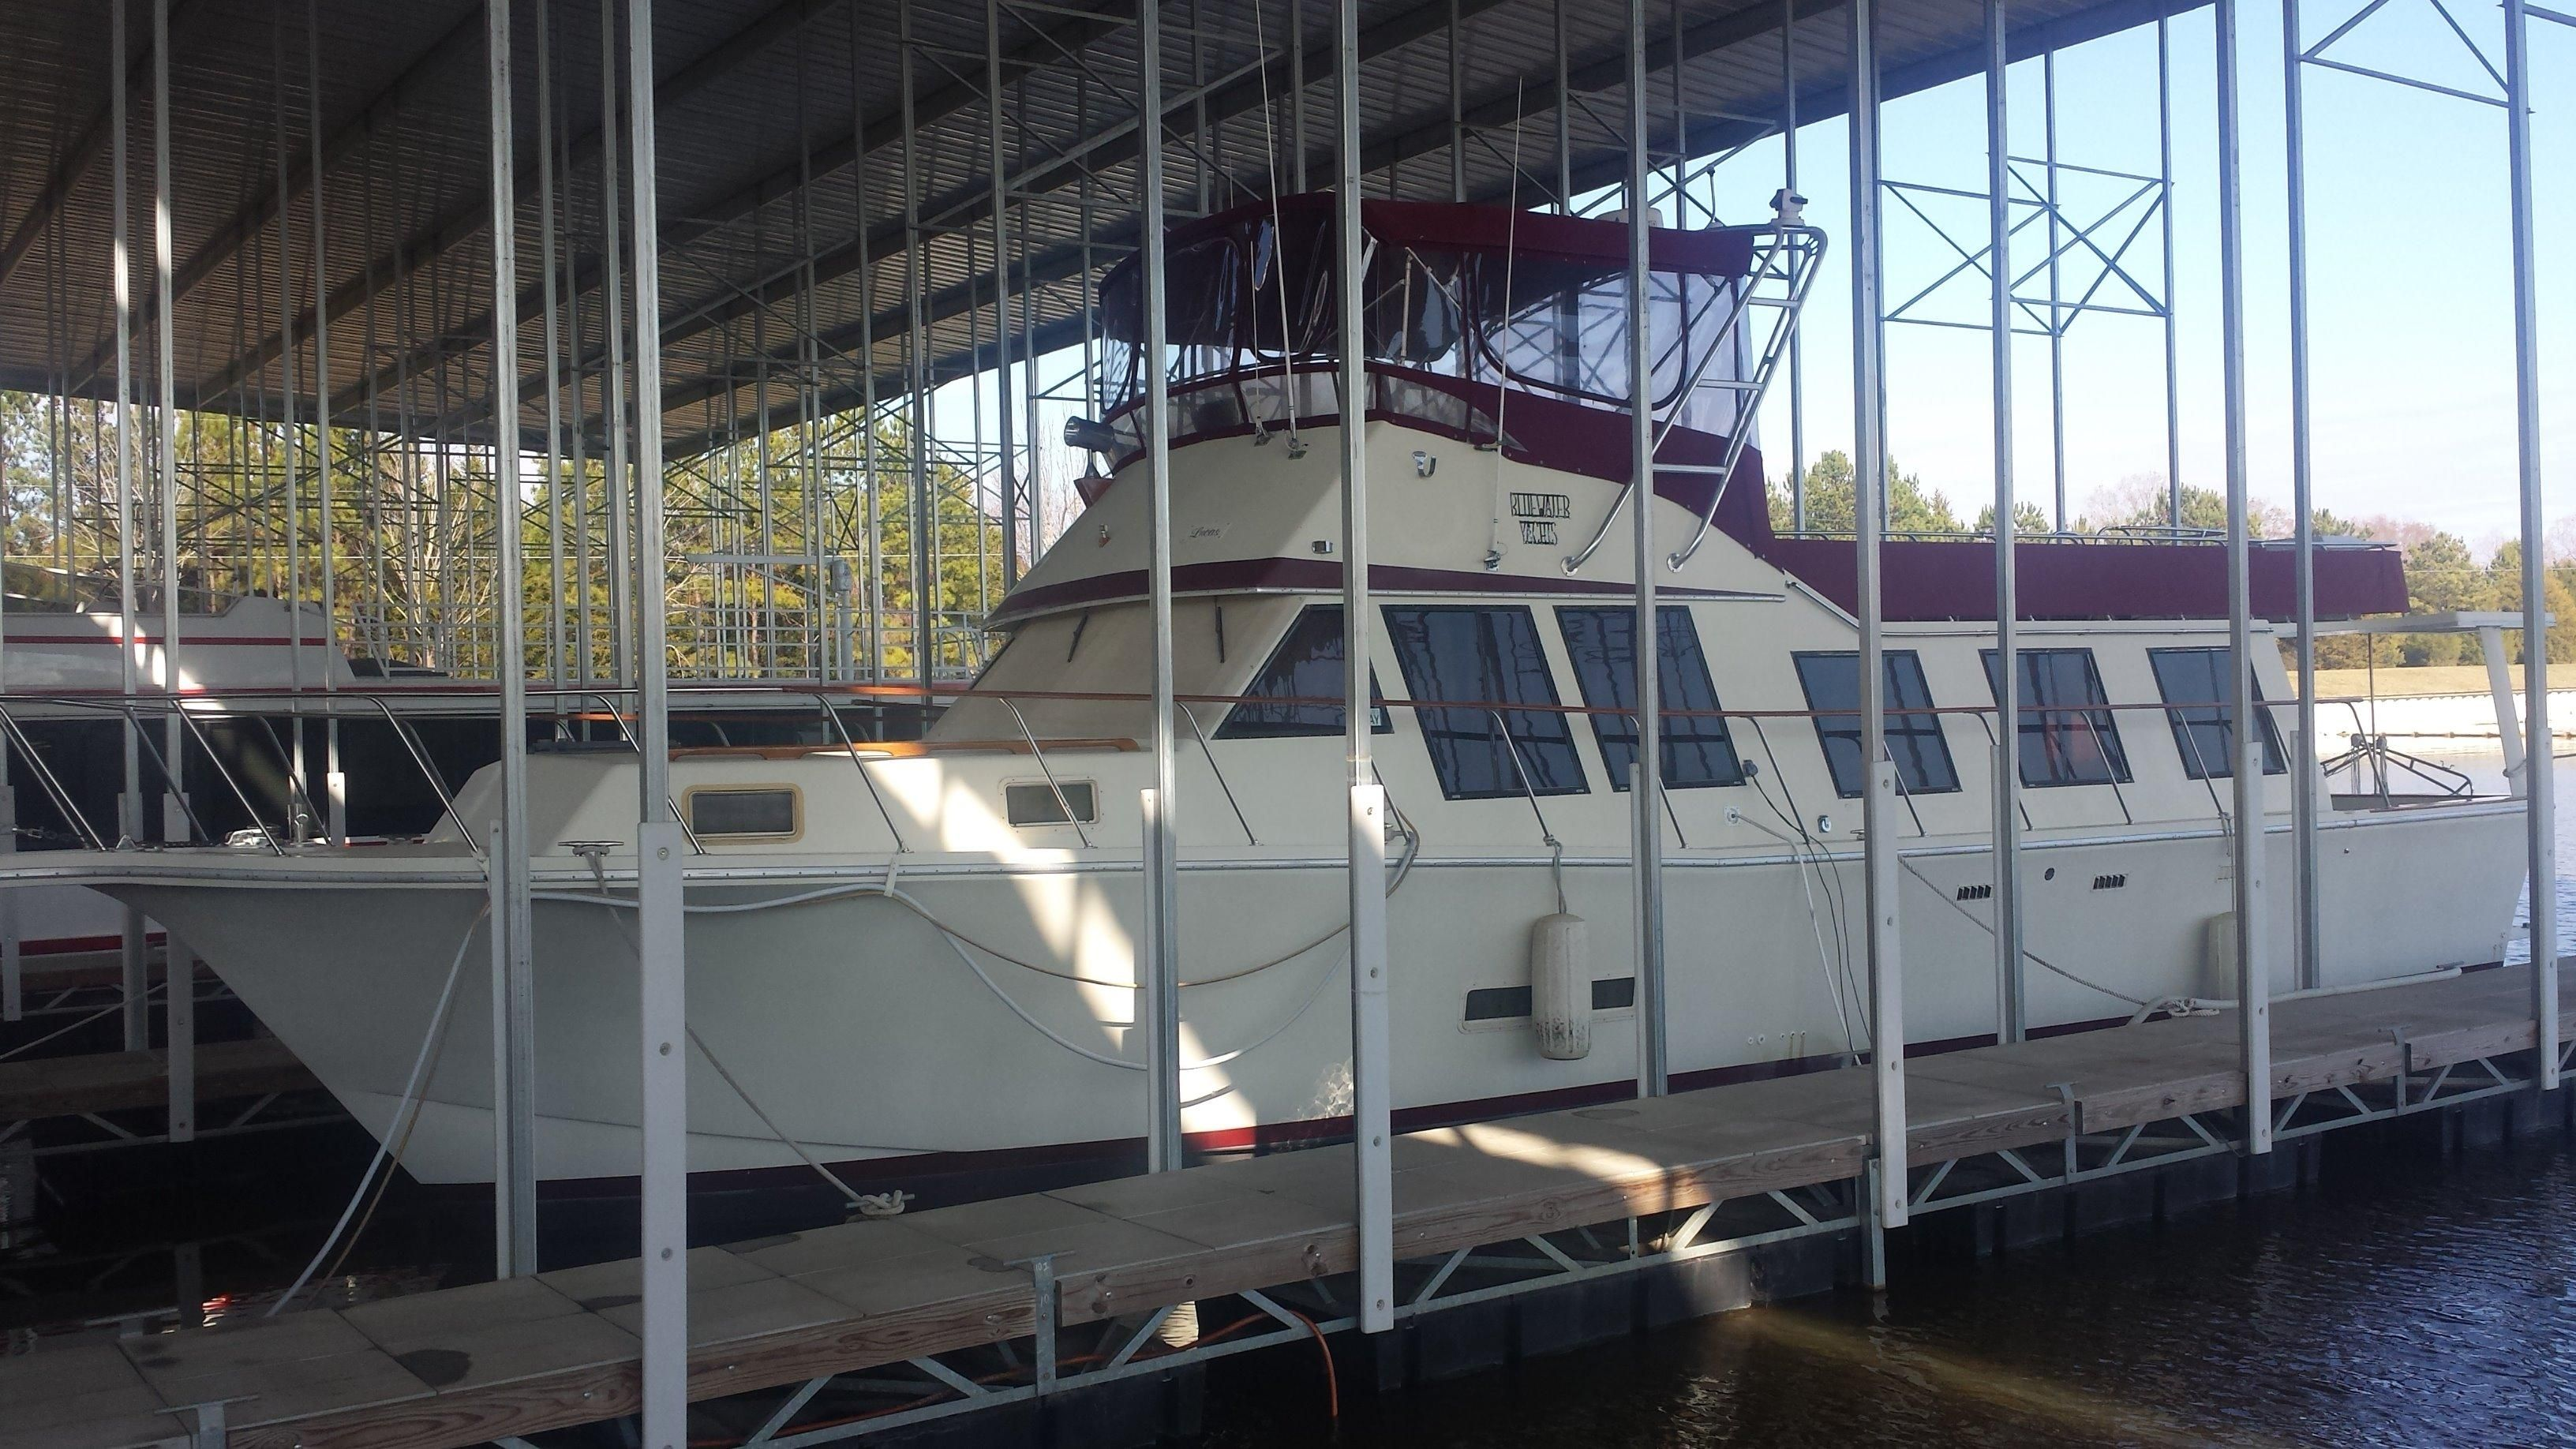 Demopolis (AL) United States  City pictures : 1980 Bluewater Yacht Cruiser Power Boat For Sale www.yachtworld.com